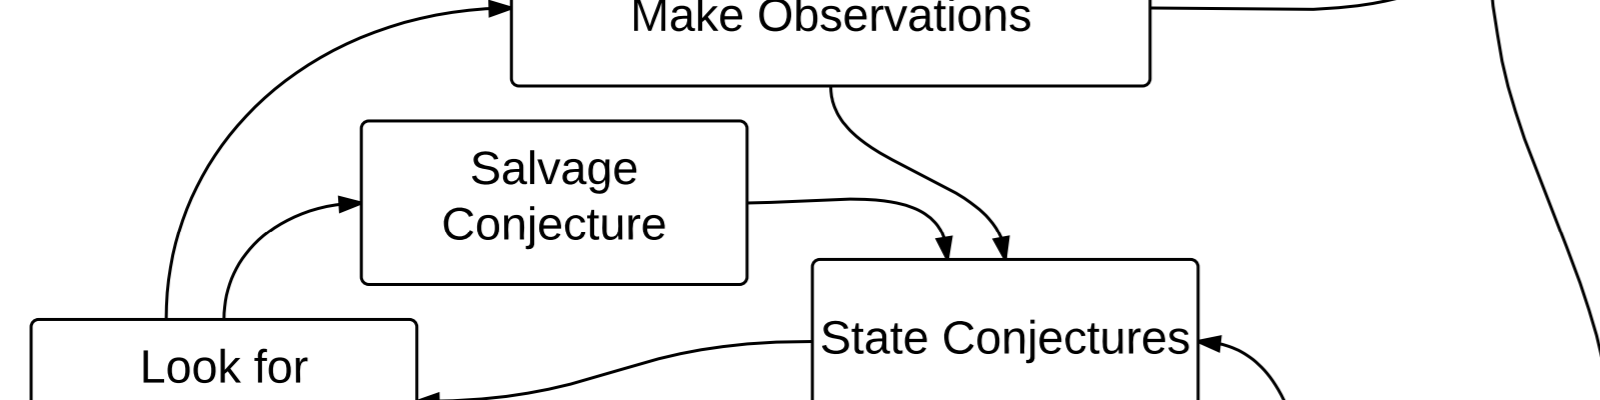 Make Observations arrow to State Conjectures